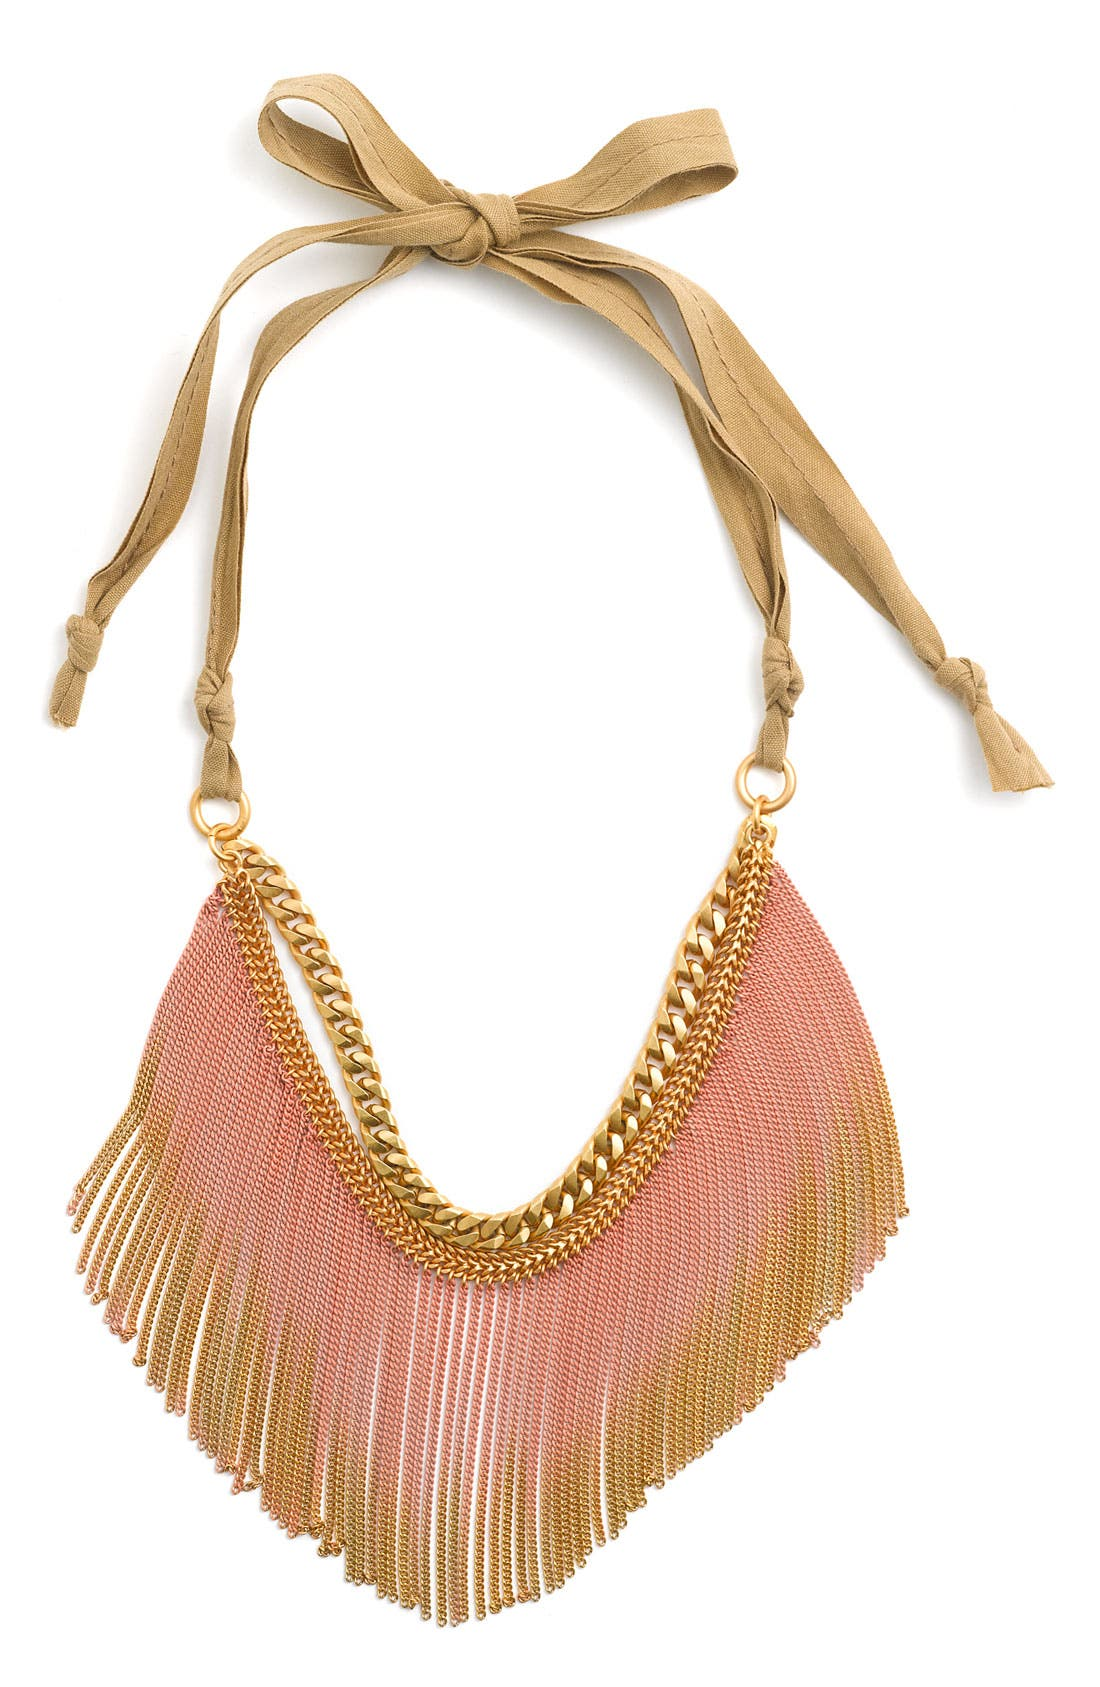 Main Image - Juicy Couture 'Wanderlust' Gradient Fringe Necklace